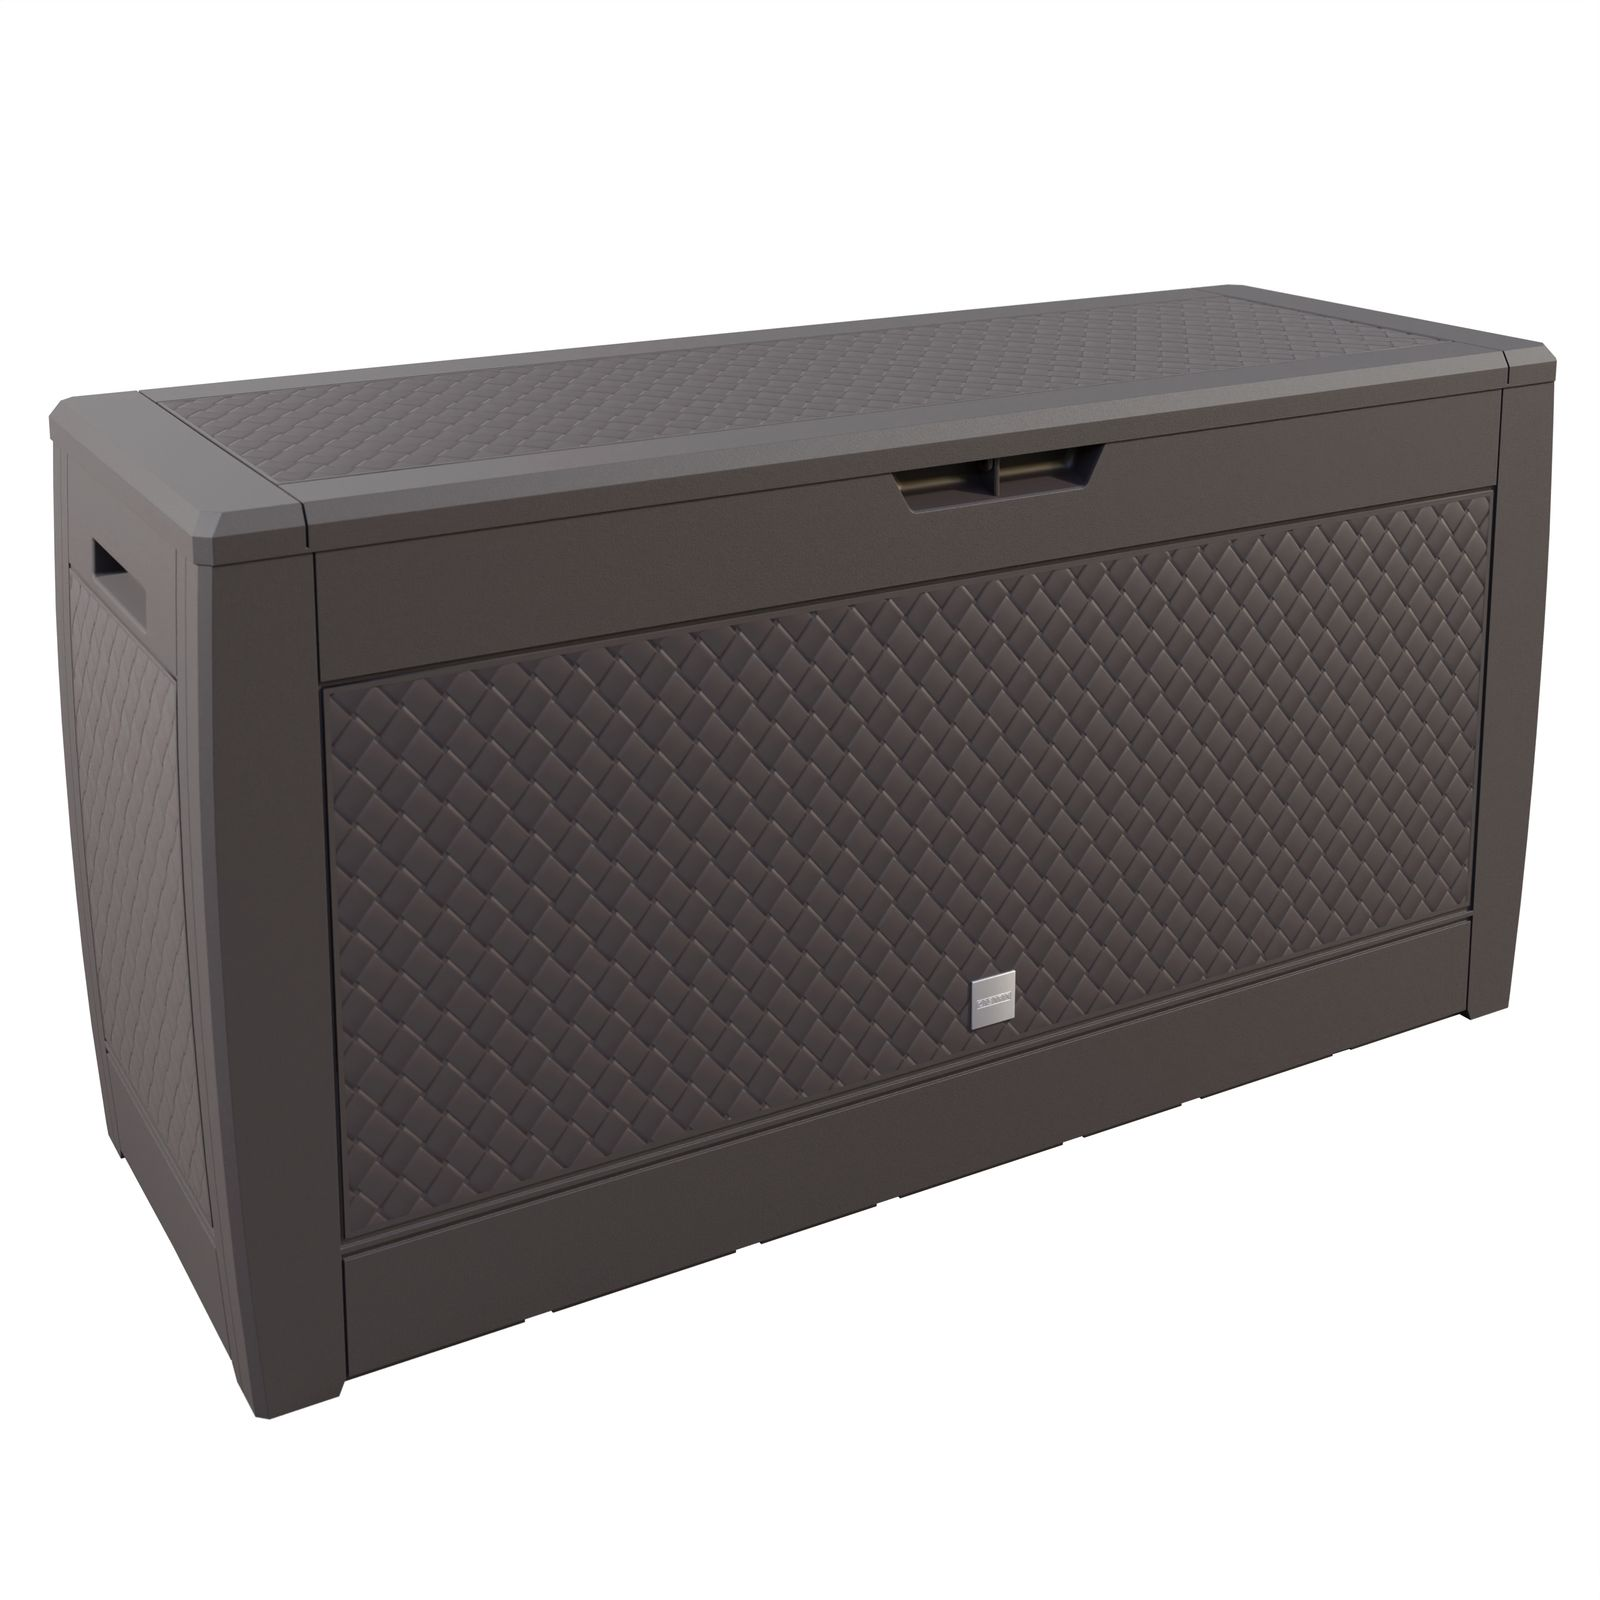 auflagenbox truhe box poly rattan gartenbox gartentruhe. Black Bedroom Furniture Sets. Home Design Ideas